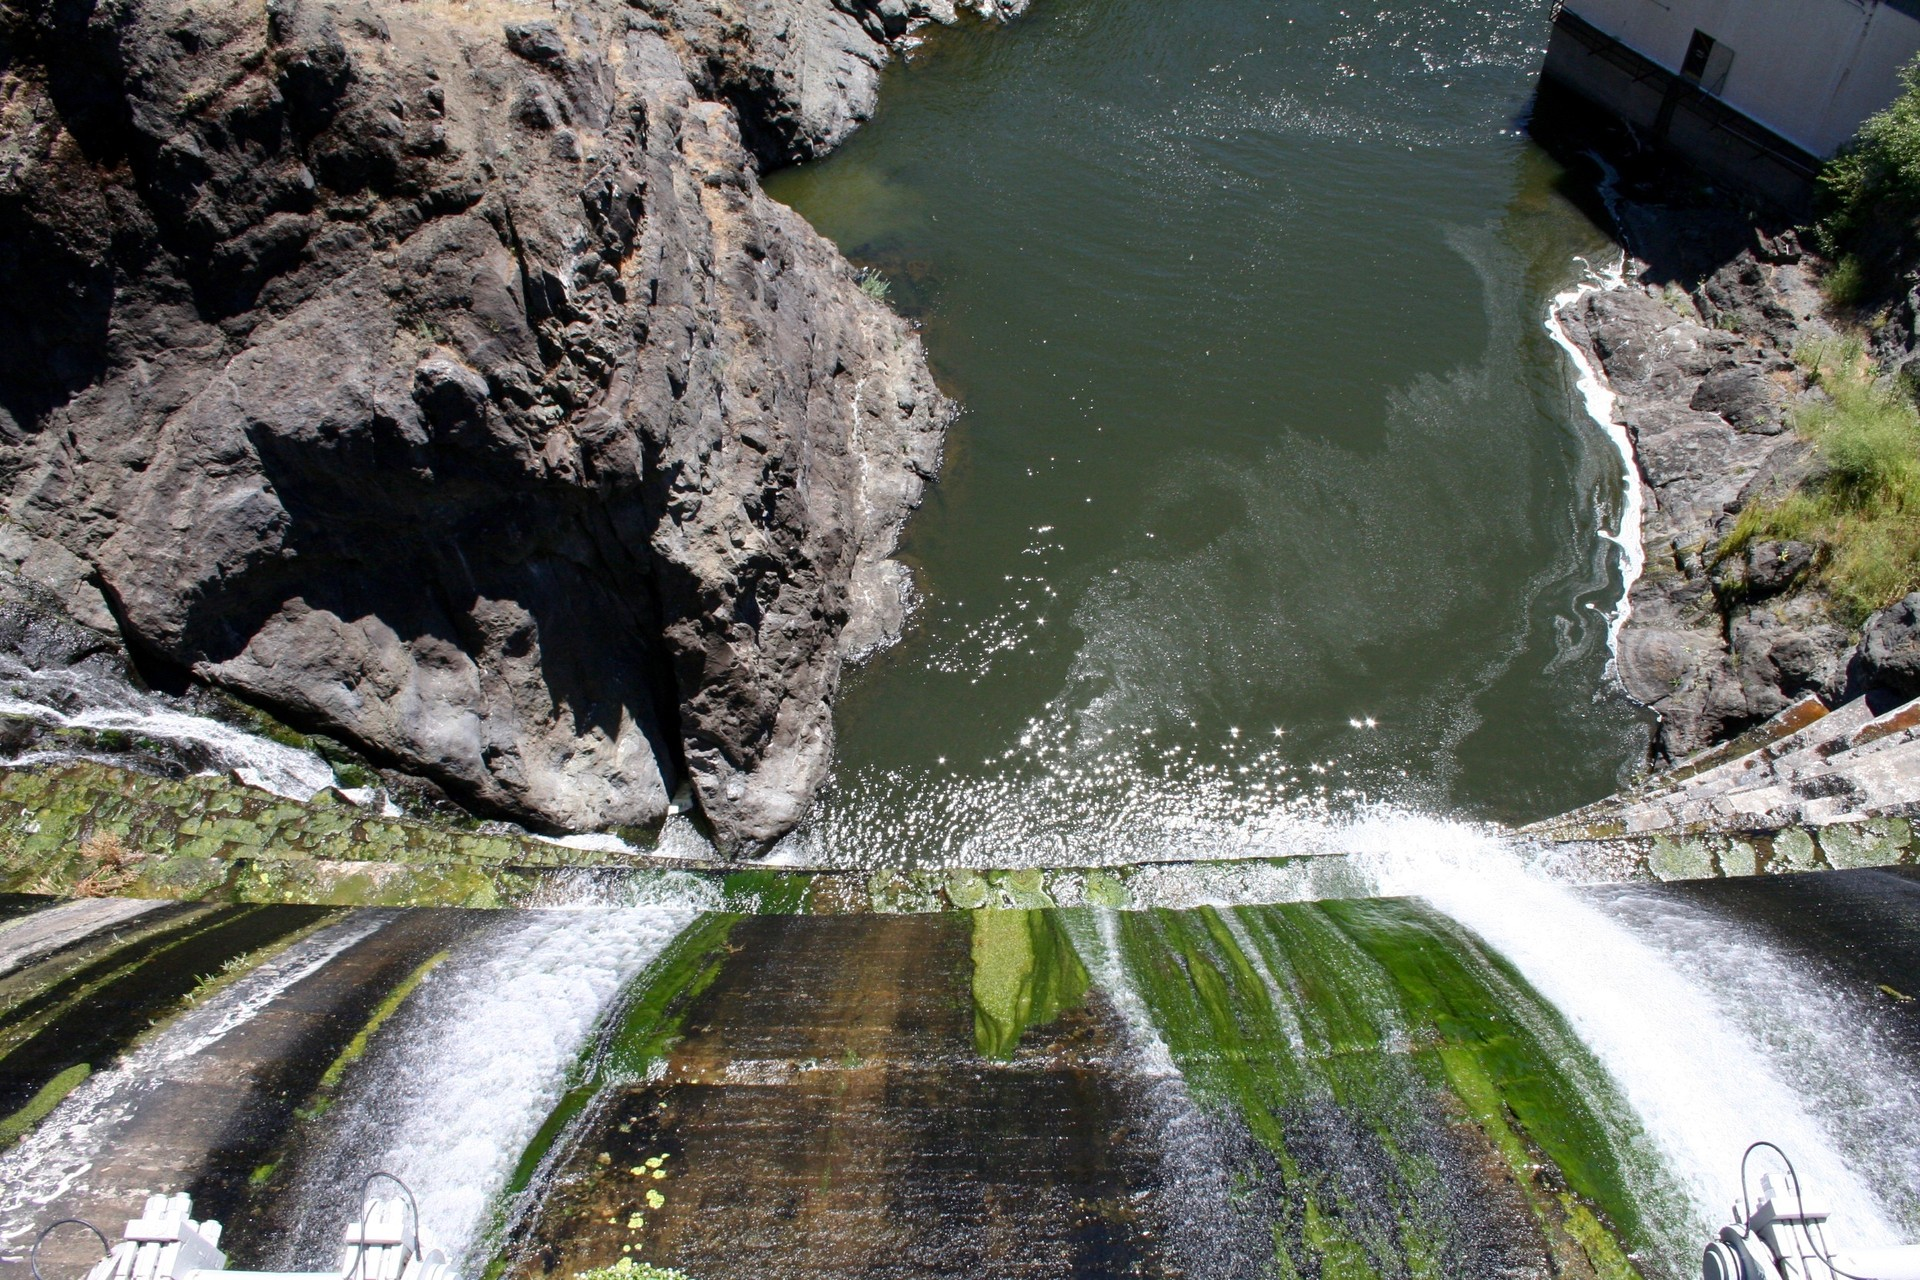 The 132-foot-high Copco 1 Dam, on the Klamath River upstream of the Siskiyou County hamlet of Hornbrook, has generated power for nearly a century.